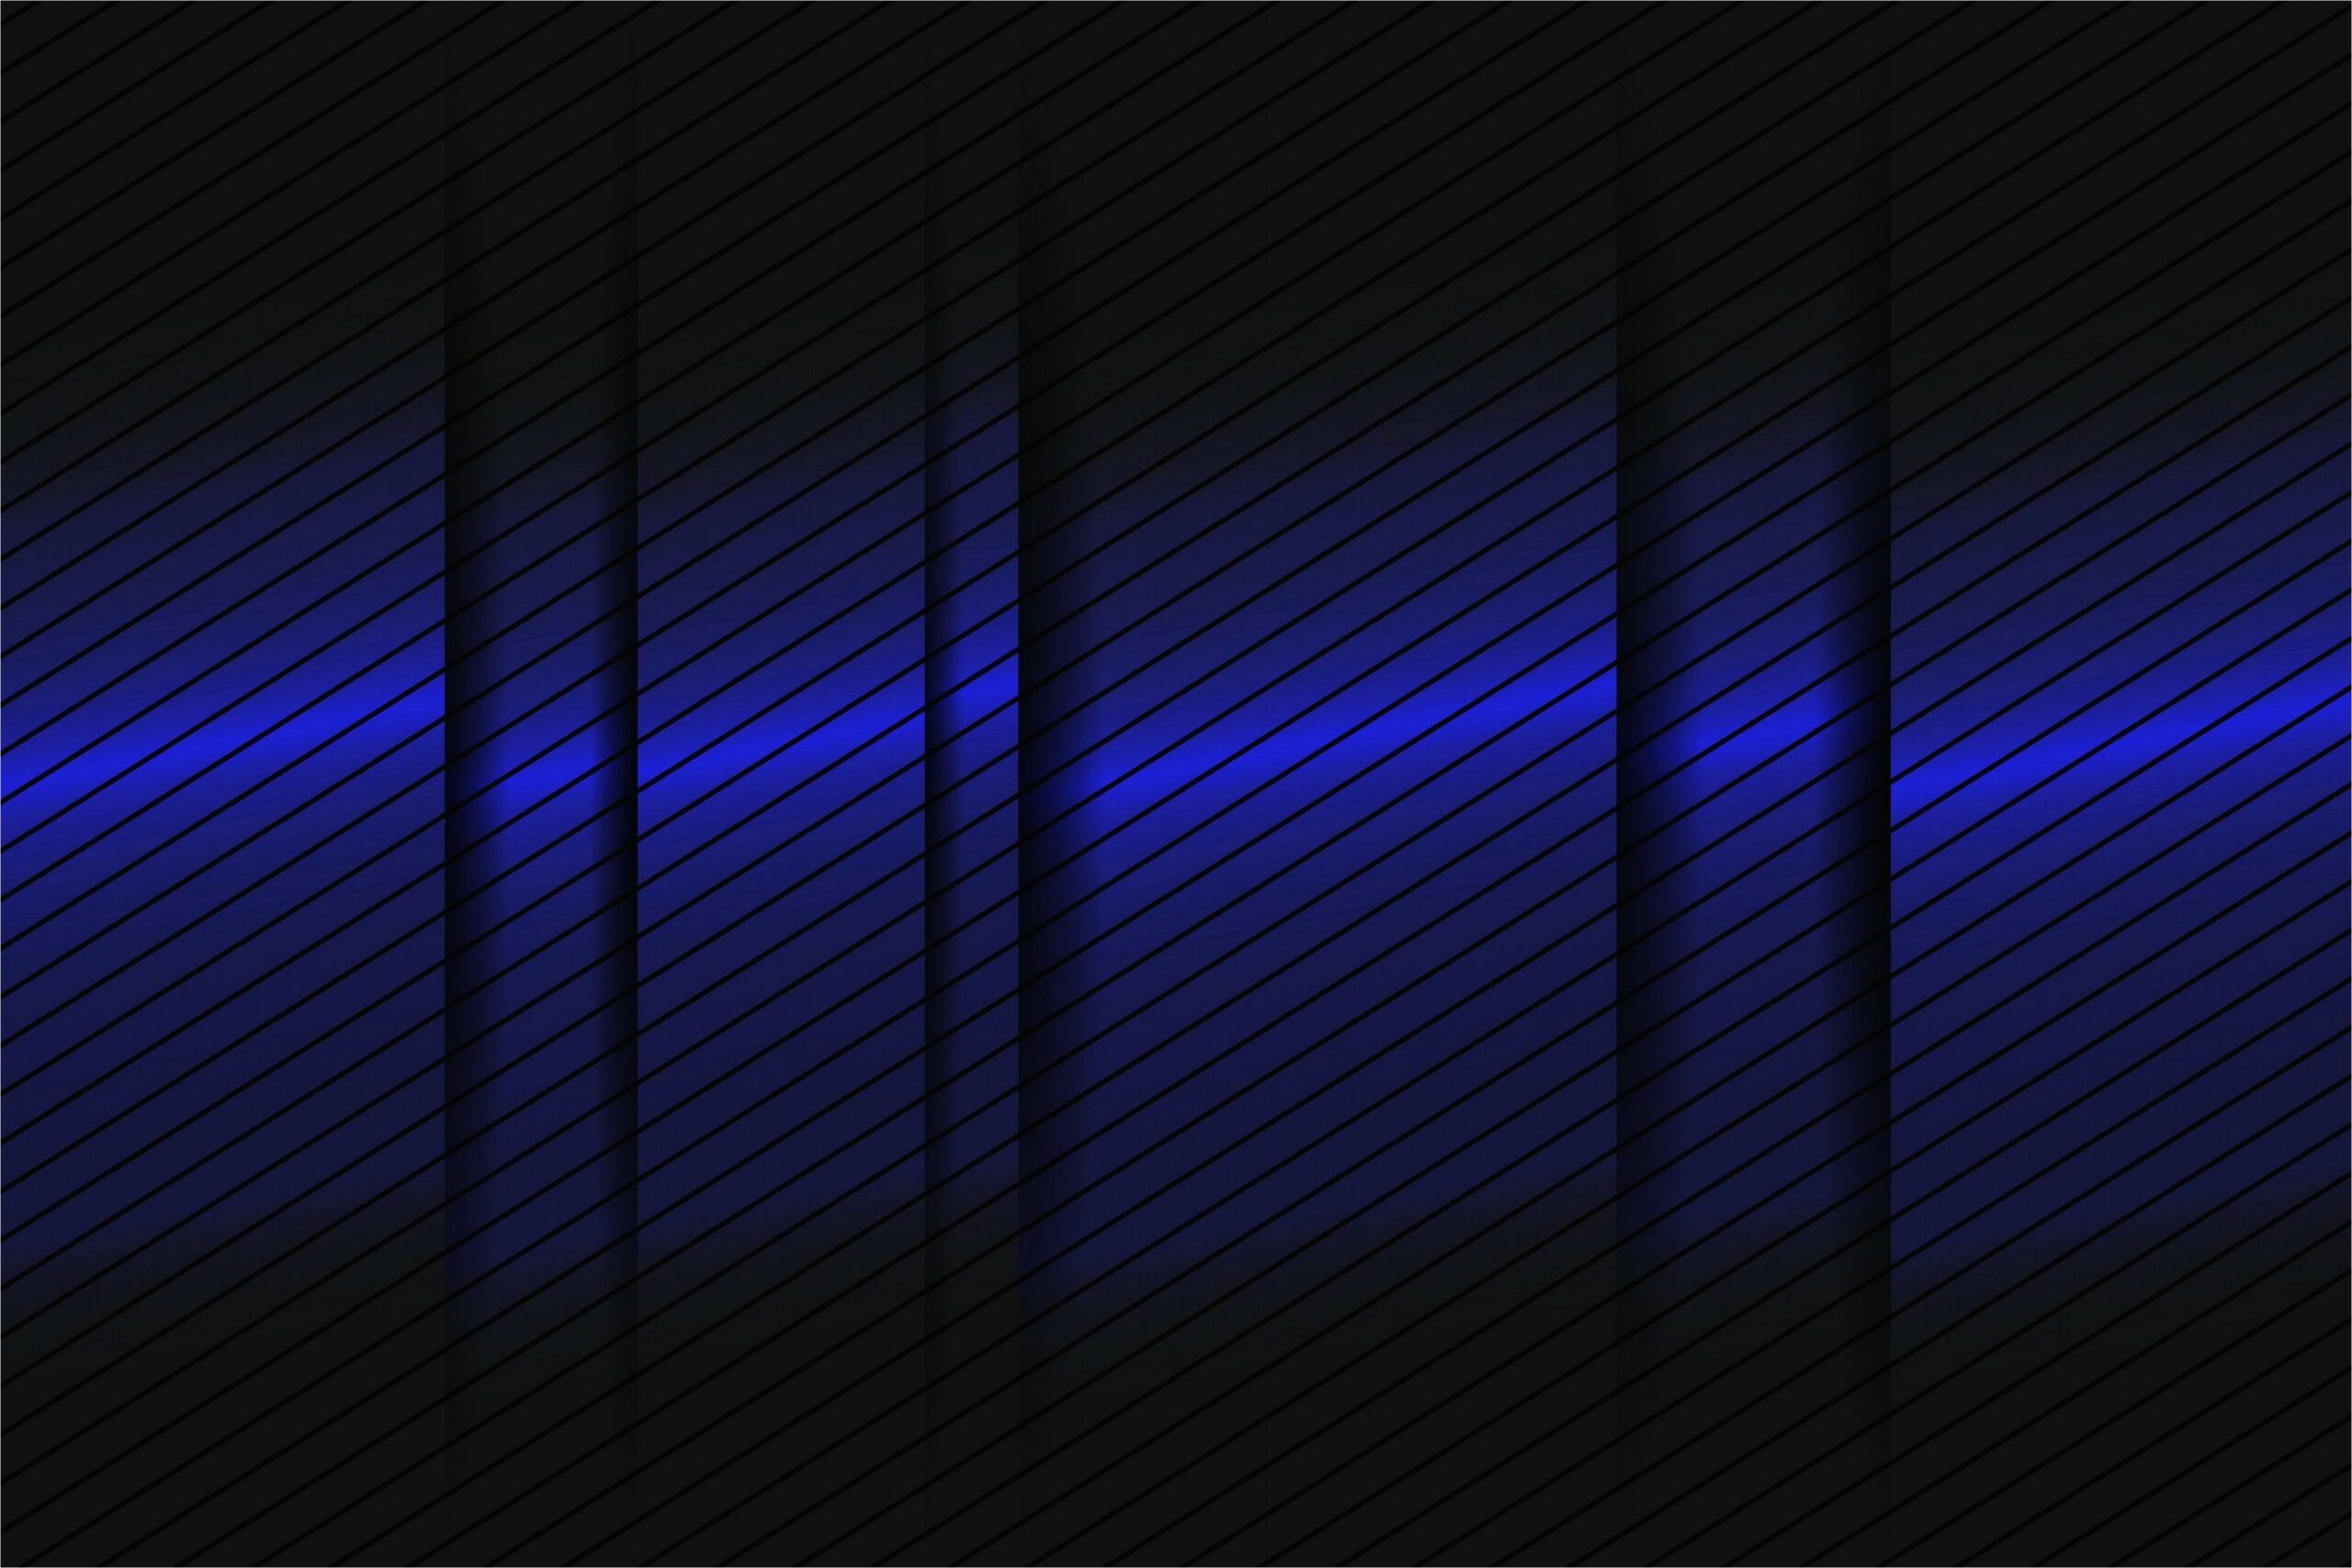 4k Wallpaper Blue Abstract In 2020 Blue Background Wallpapers Blue Abstract Black And Blue Wallpaper